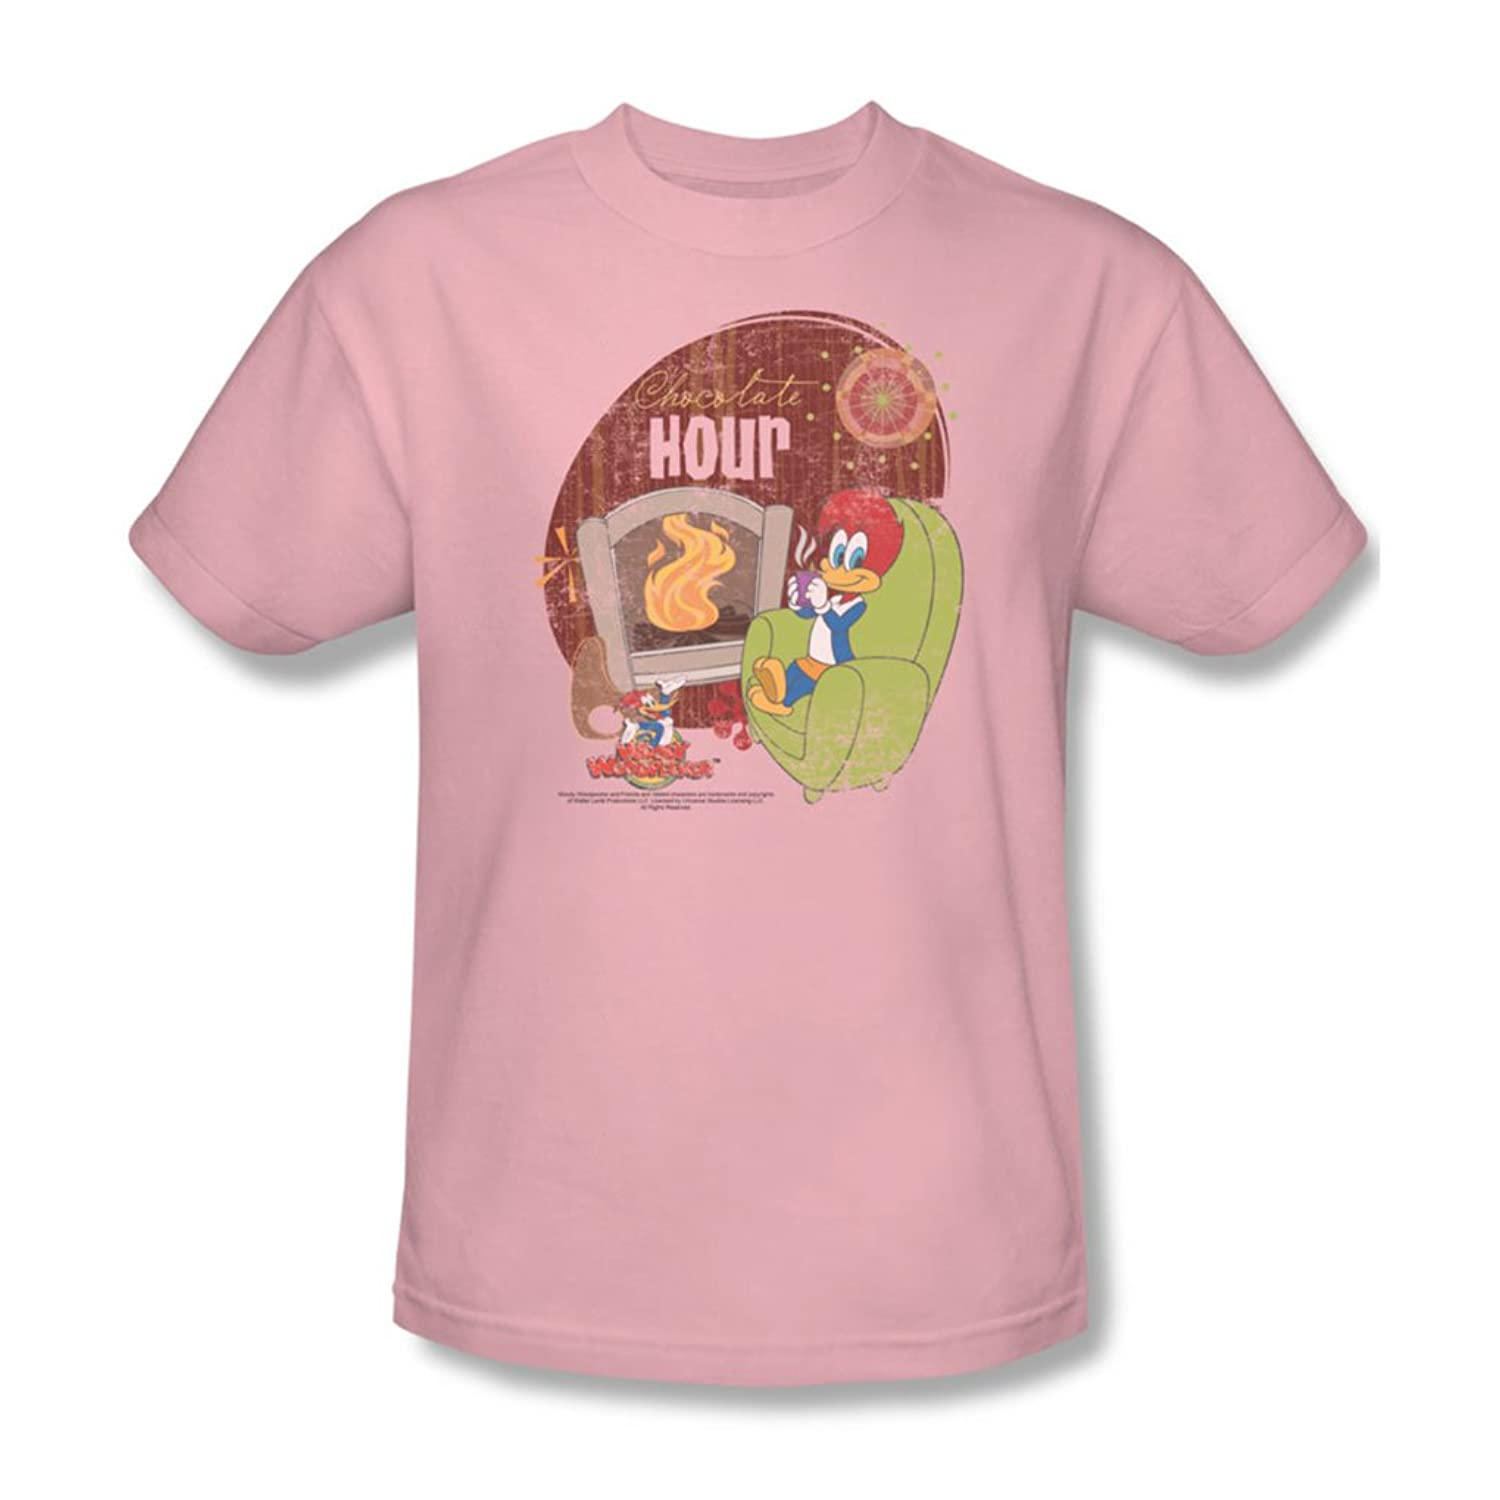 Woody Woodpecker - Mens Chocolate Hour T-Shirt In Pink